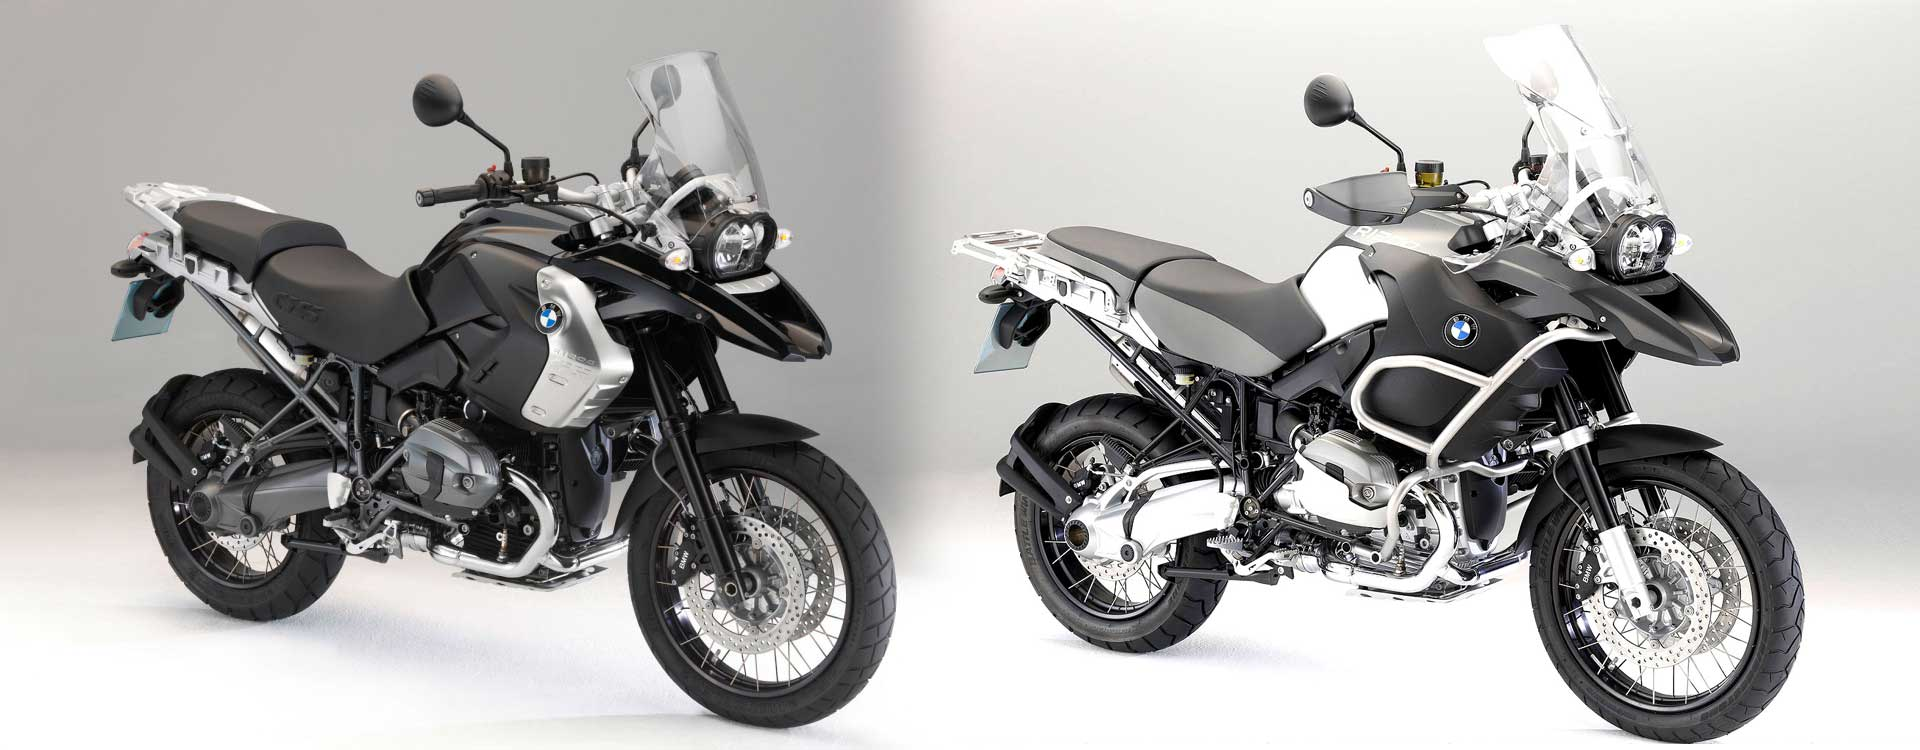 BMW R1200GS e R1200GS Adventure